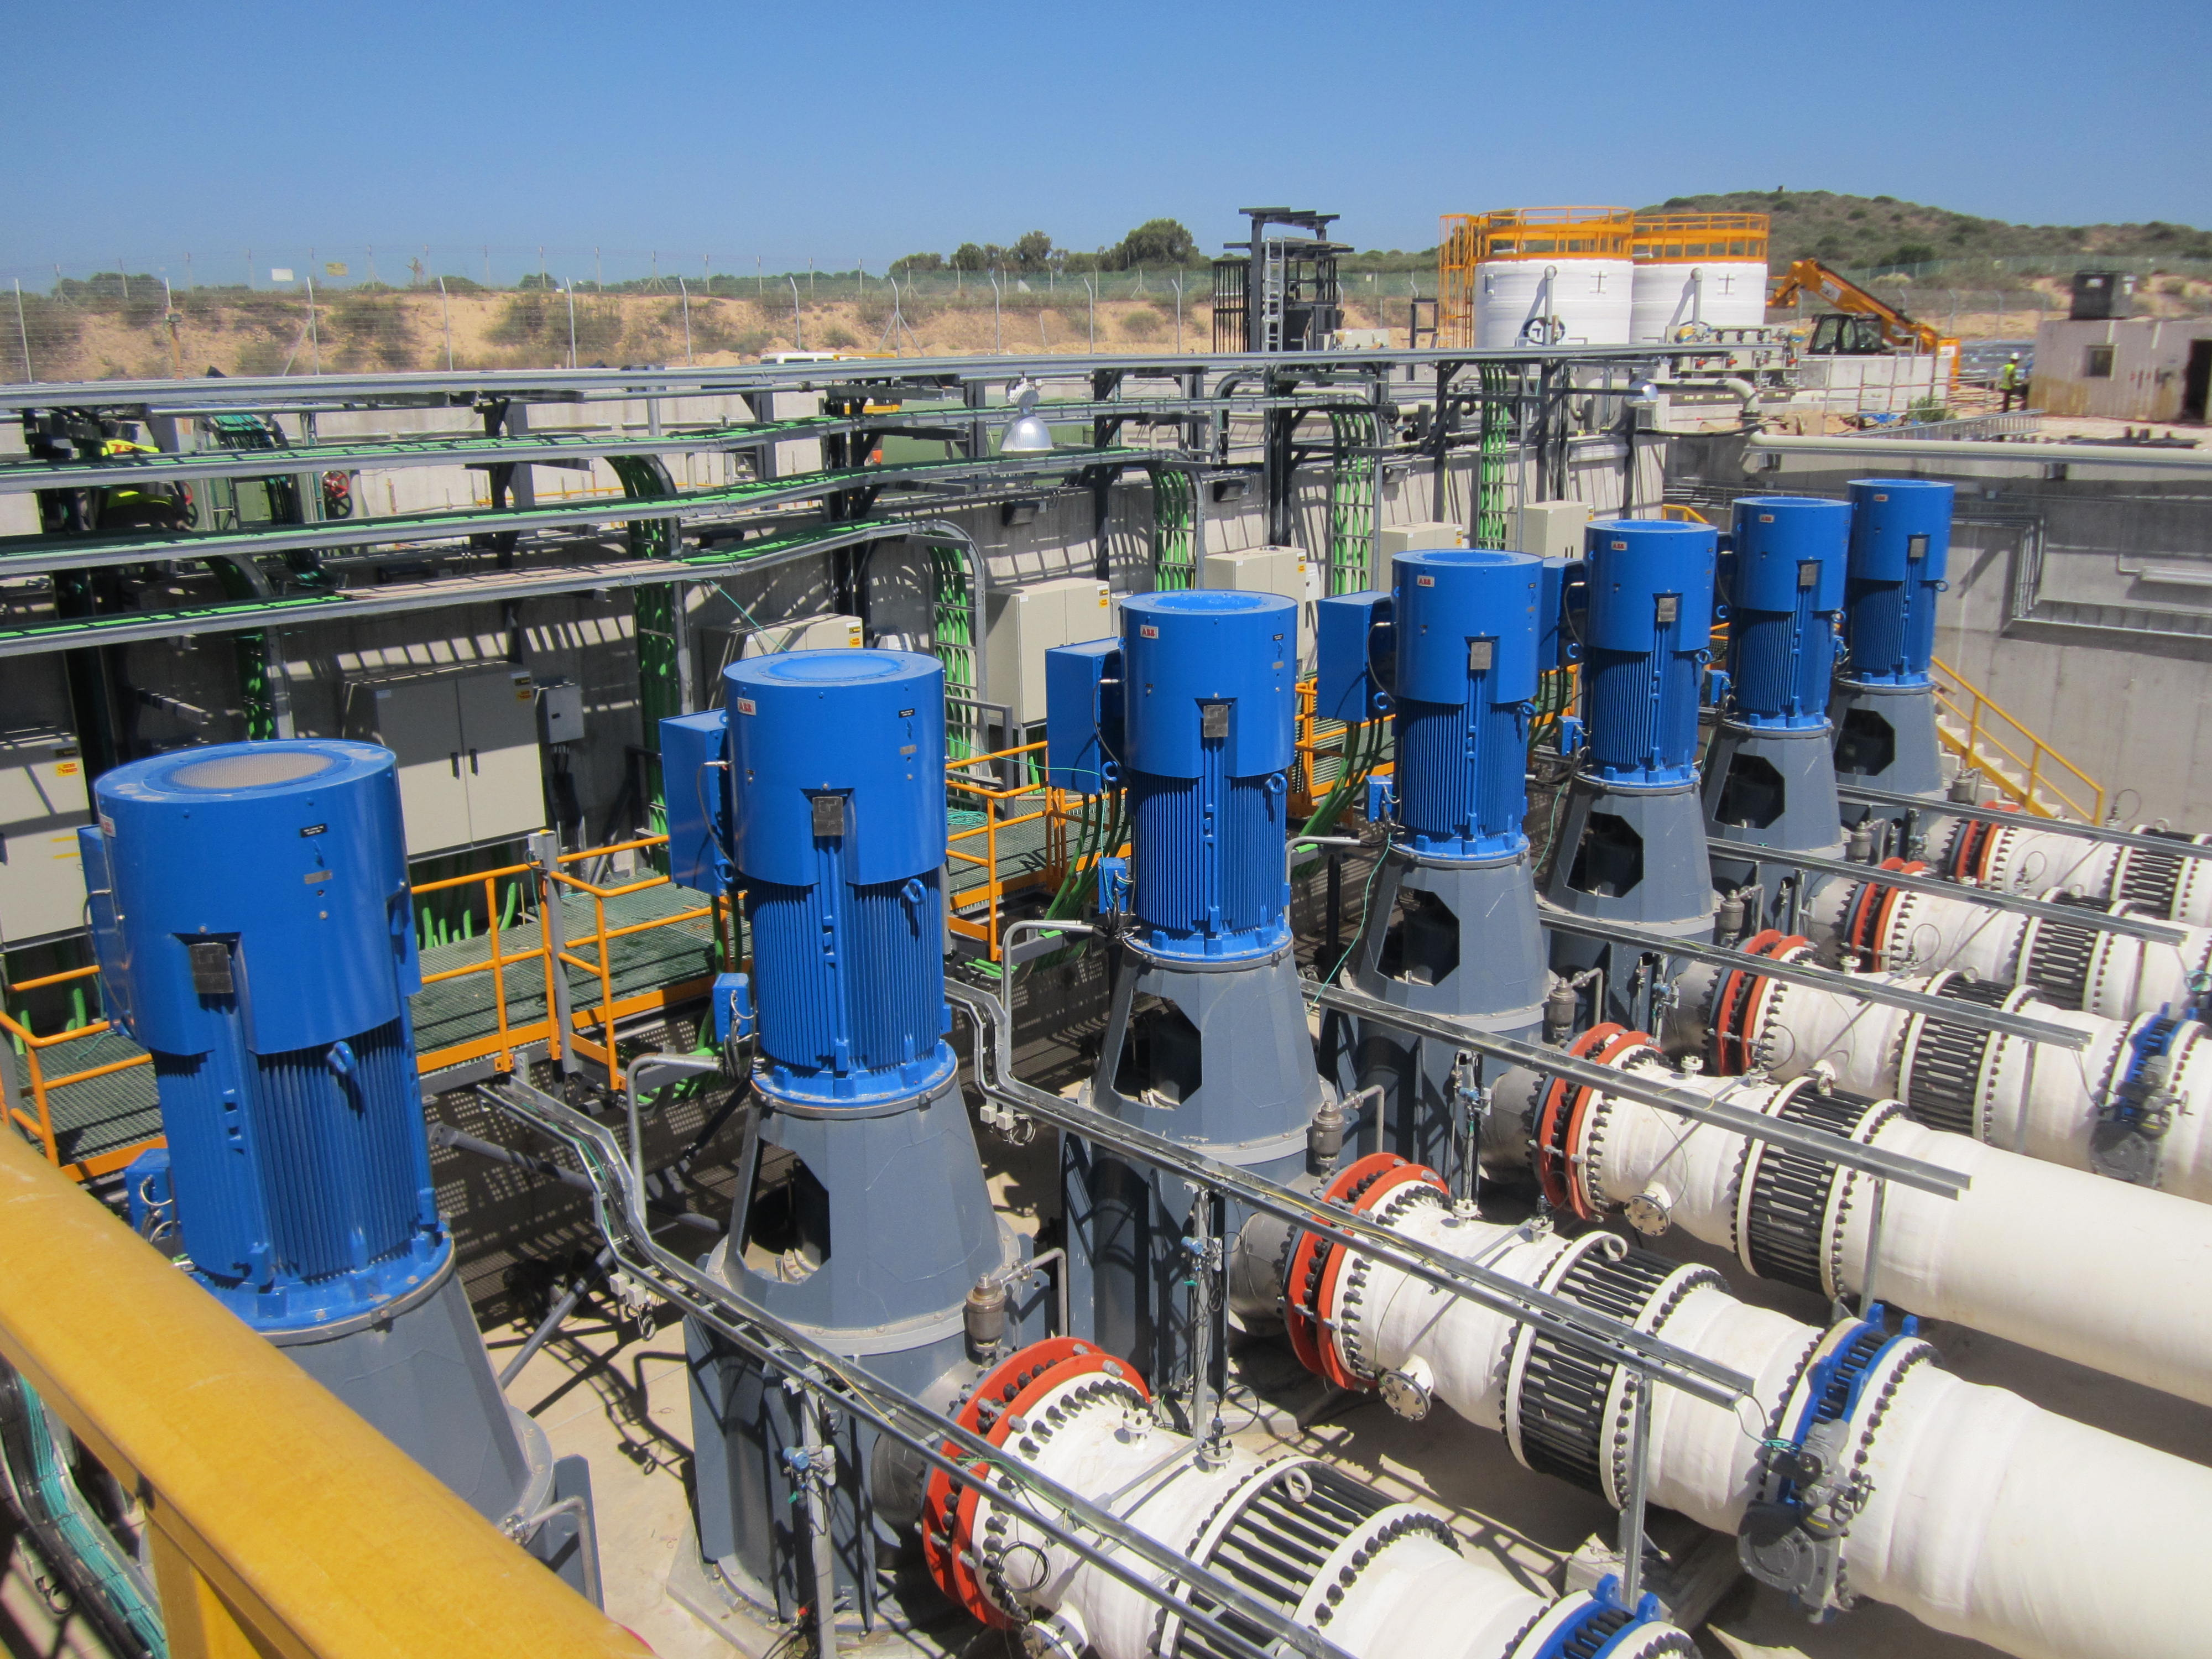 Water surplus in Israel With desalination once unthinkable is